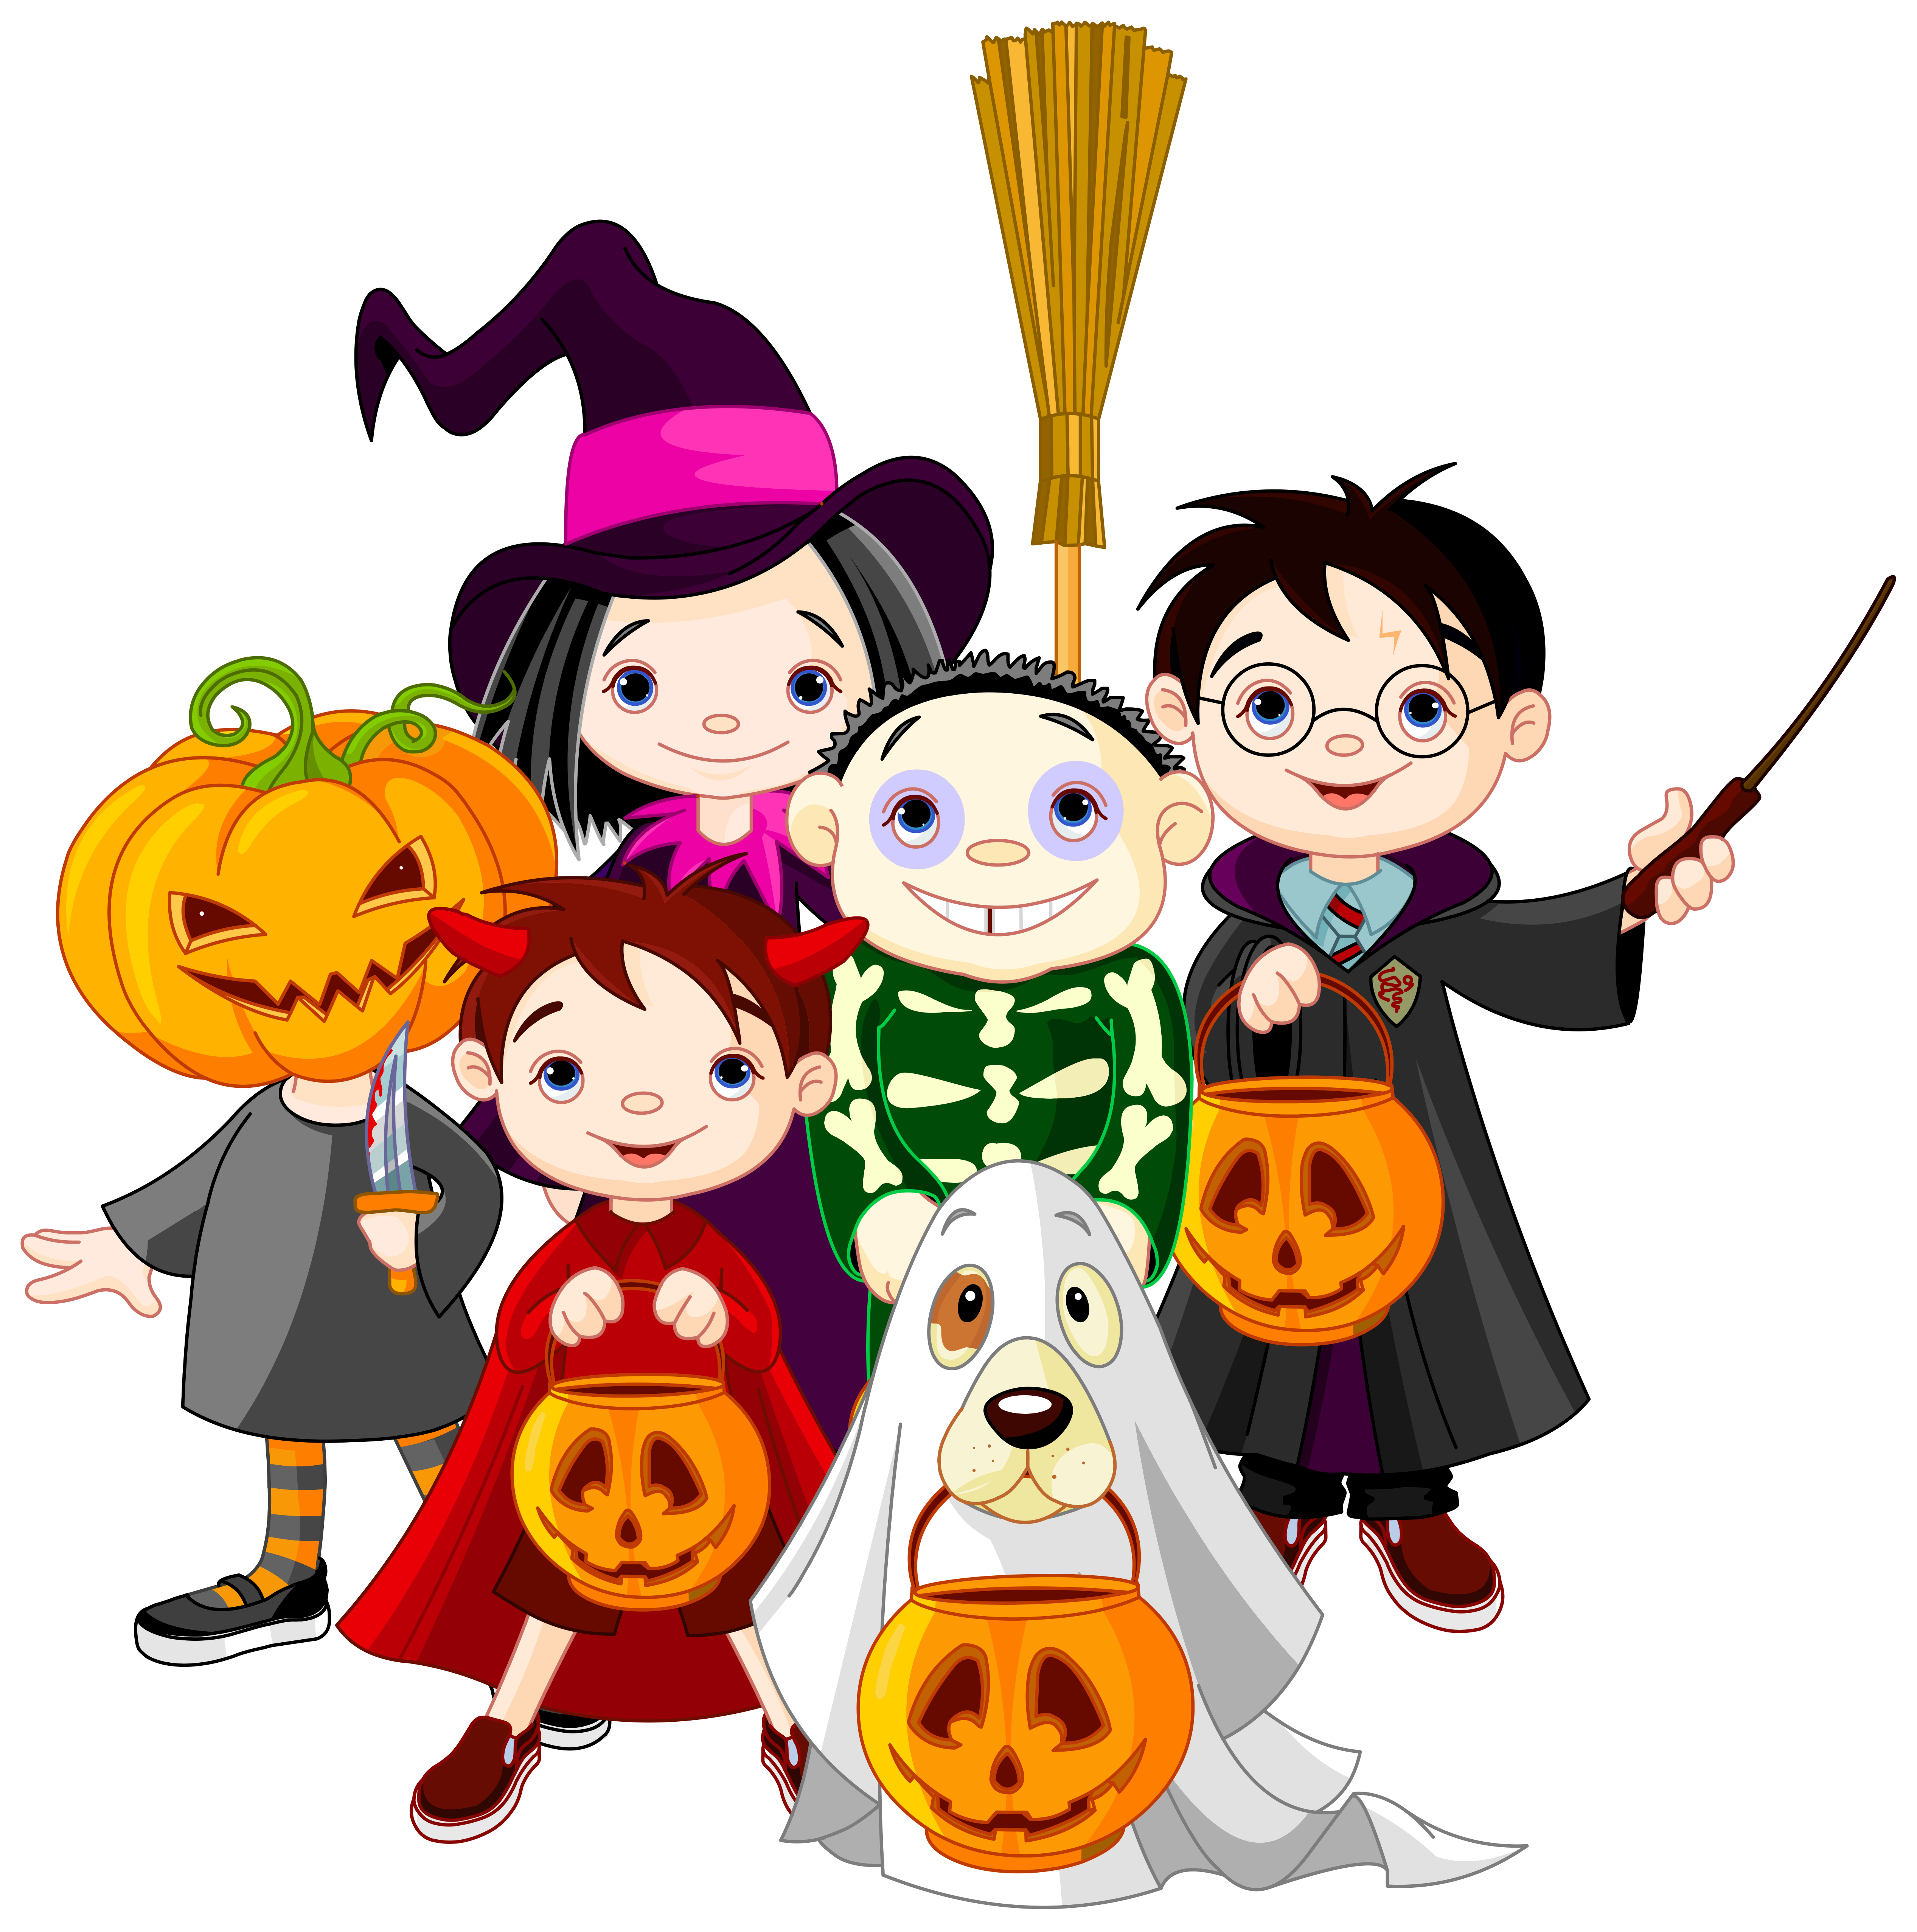 3d halloween clipart png free download 28+ Collection of Free Children's Halloween Clipart   High quality ... png free download